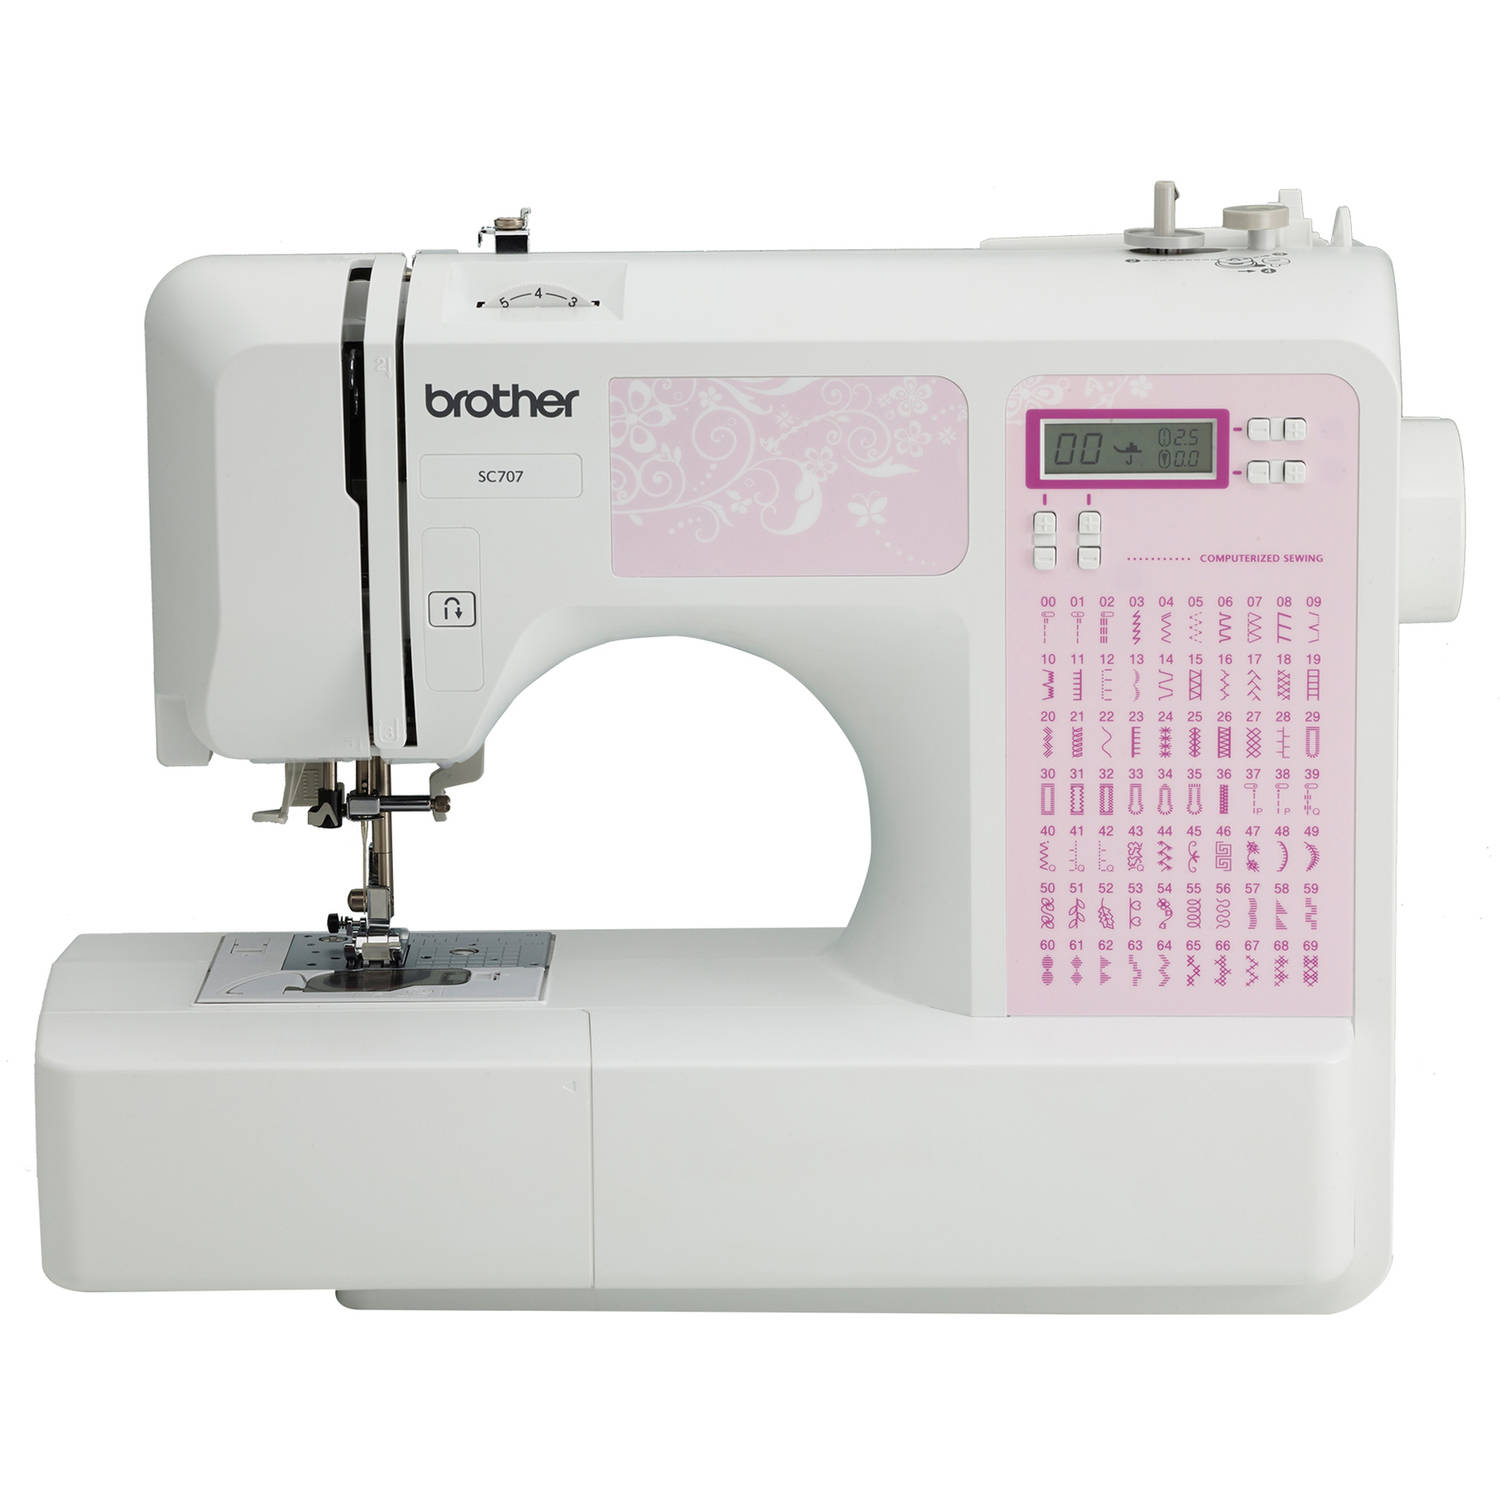 weight of sewing machine